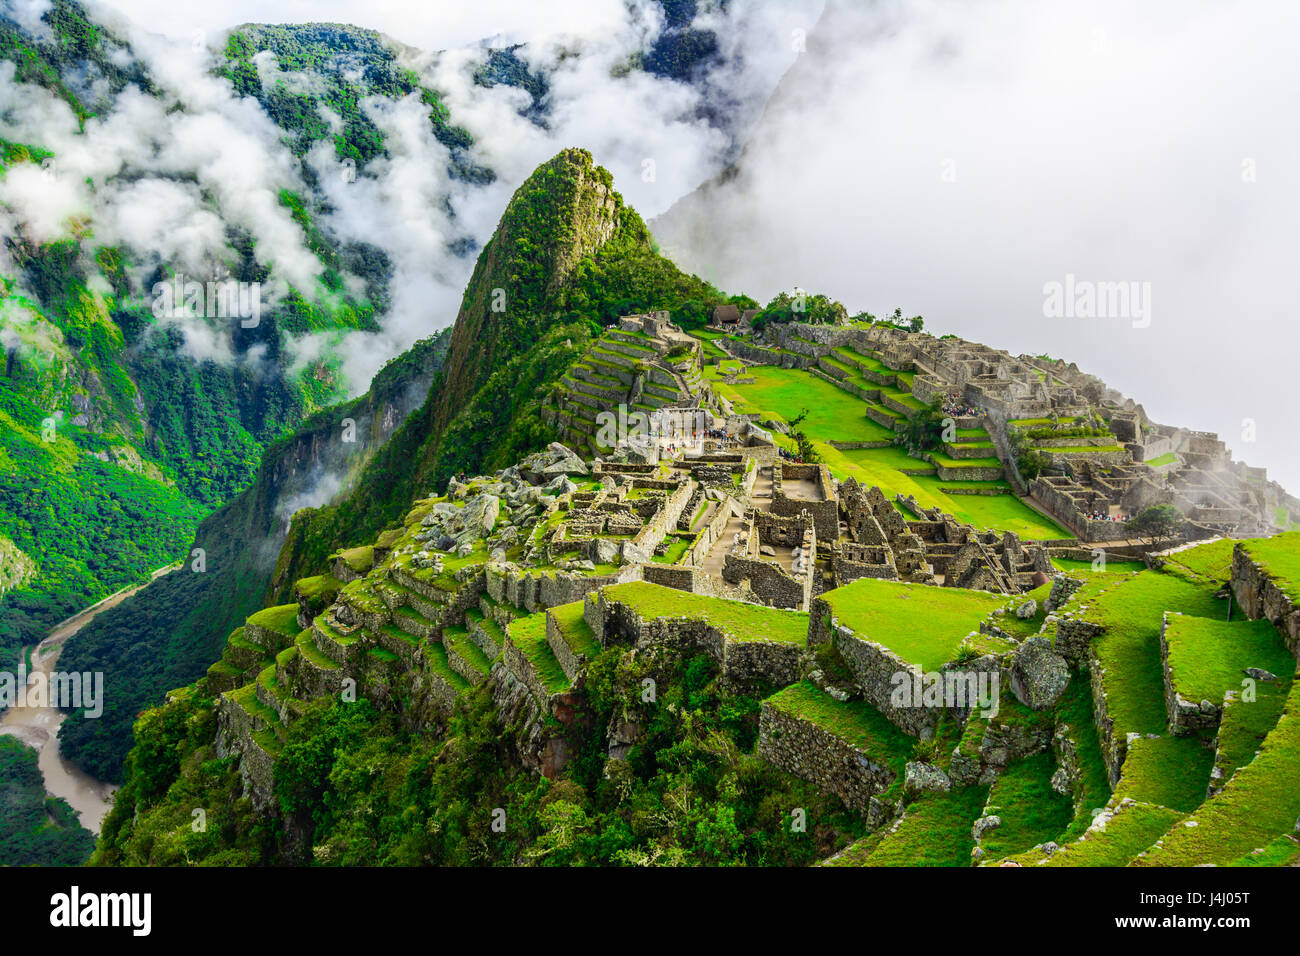 Overview of Machu Picchu, agriculture terraces, Wayna Picchu and surrounding mountains in the background - Stock Image